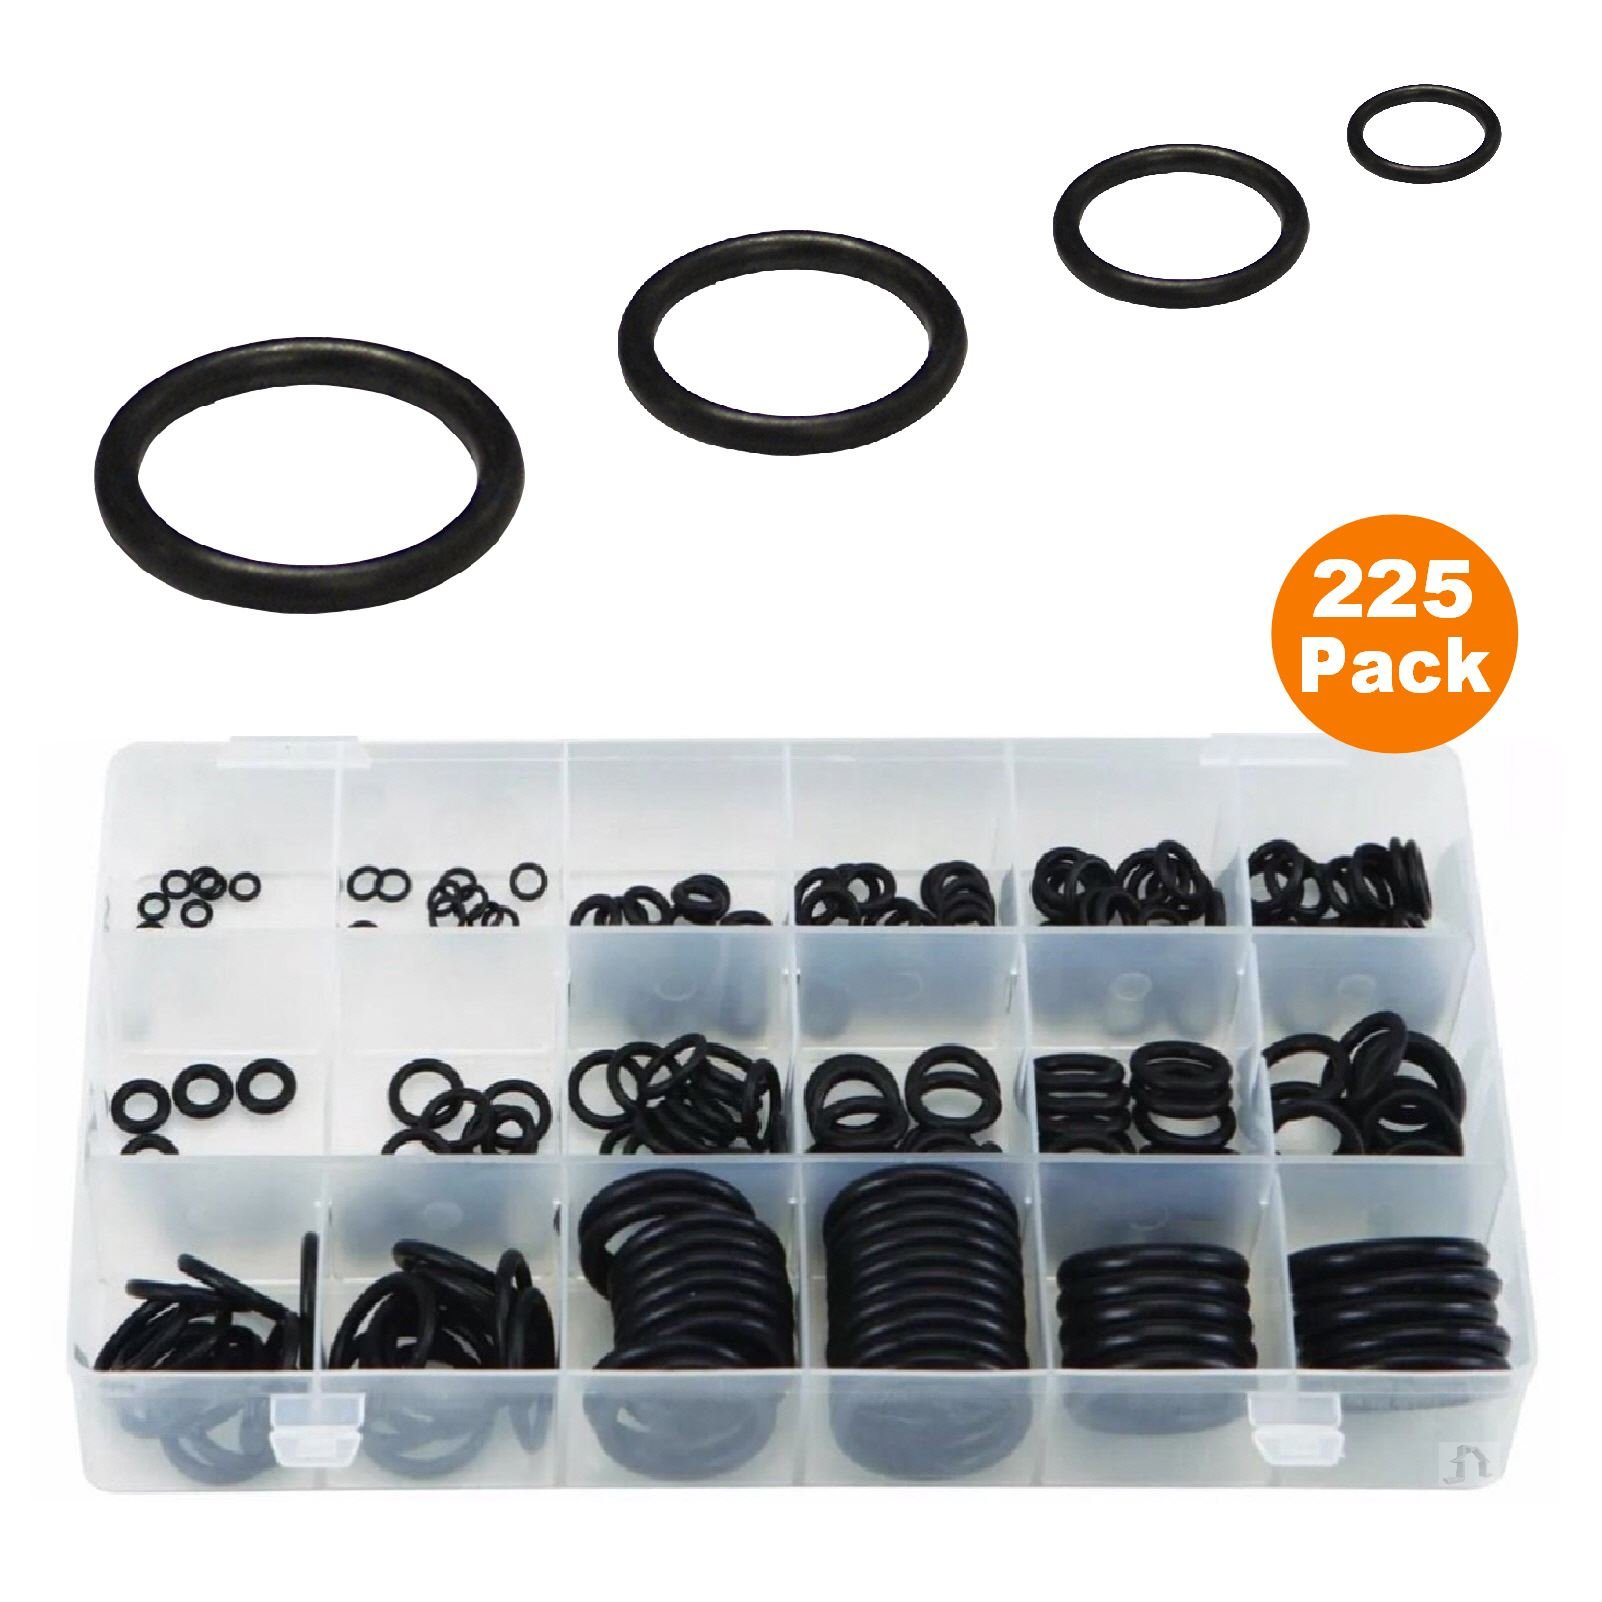 225 x Metric Nitrile O-Ring Seals, Tap Washer Plumbing Gaskets for Air & Liquids by Smart home